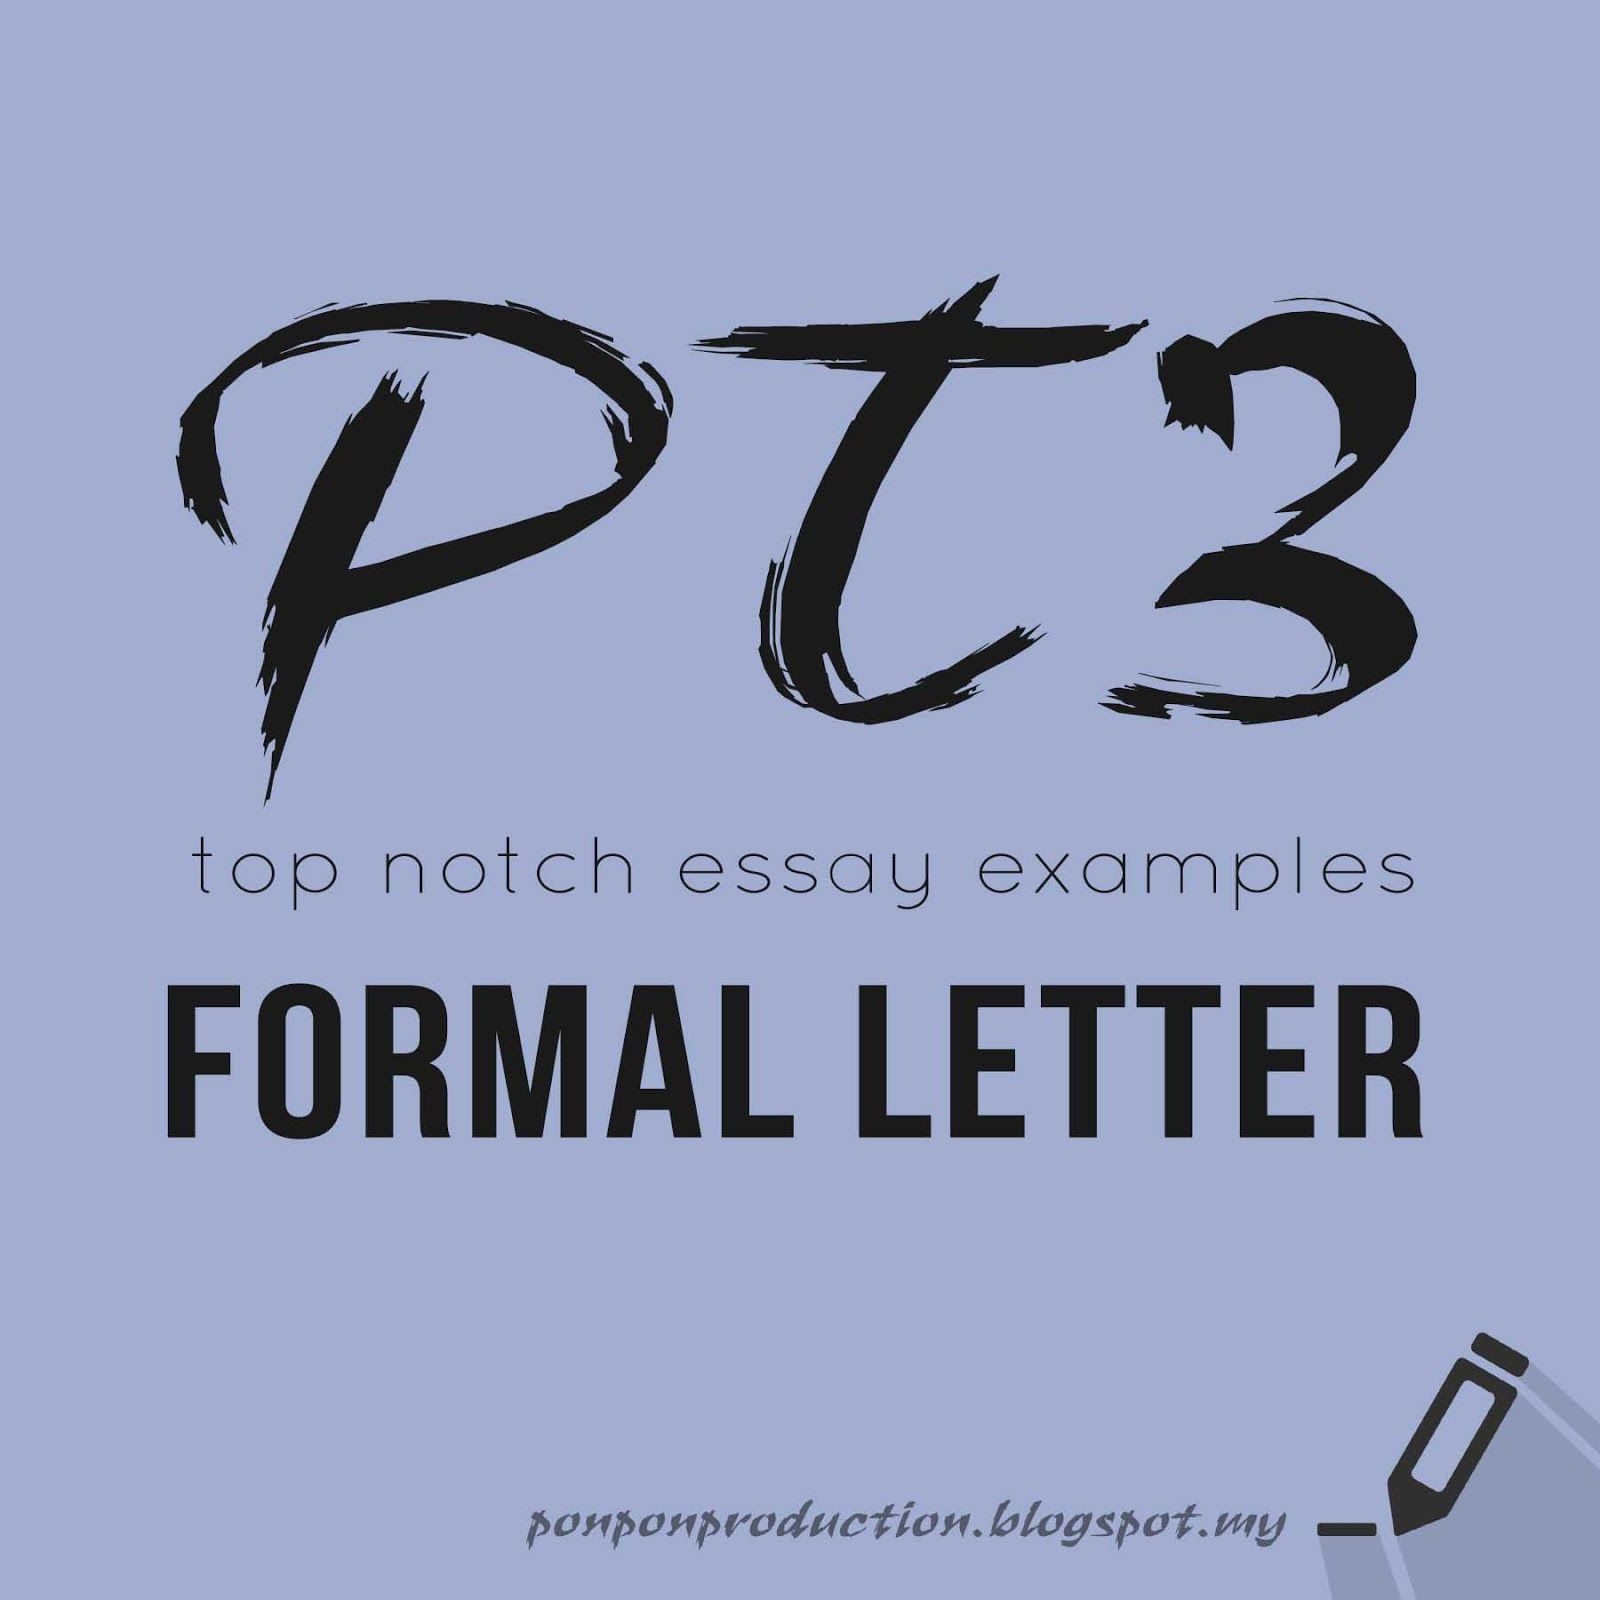 Pt Formal Letter Essay Example  Pt And Spm  Pinterest  Essay  Pt Formal Letter Essay Example